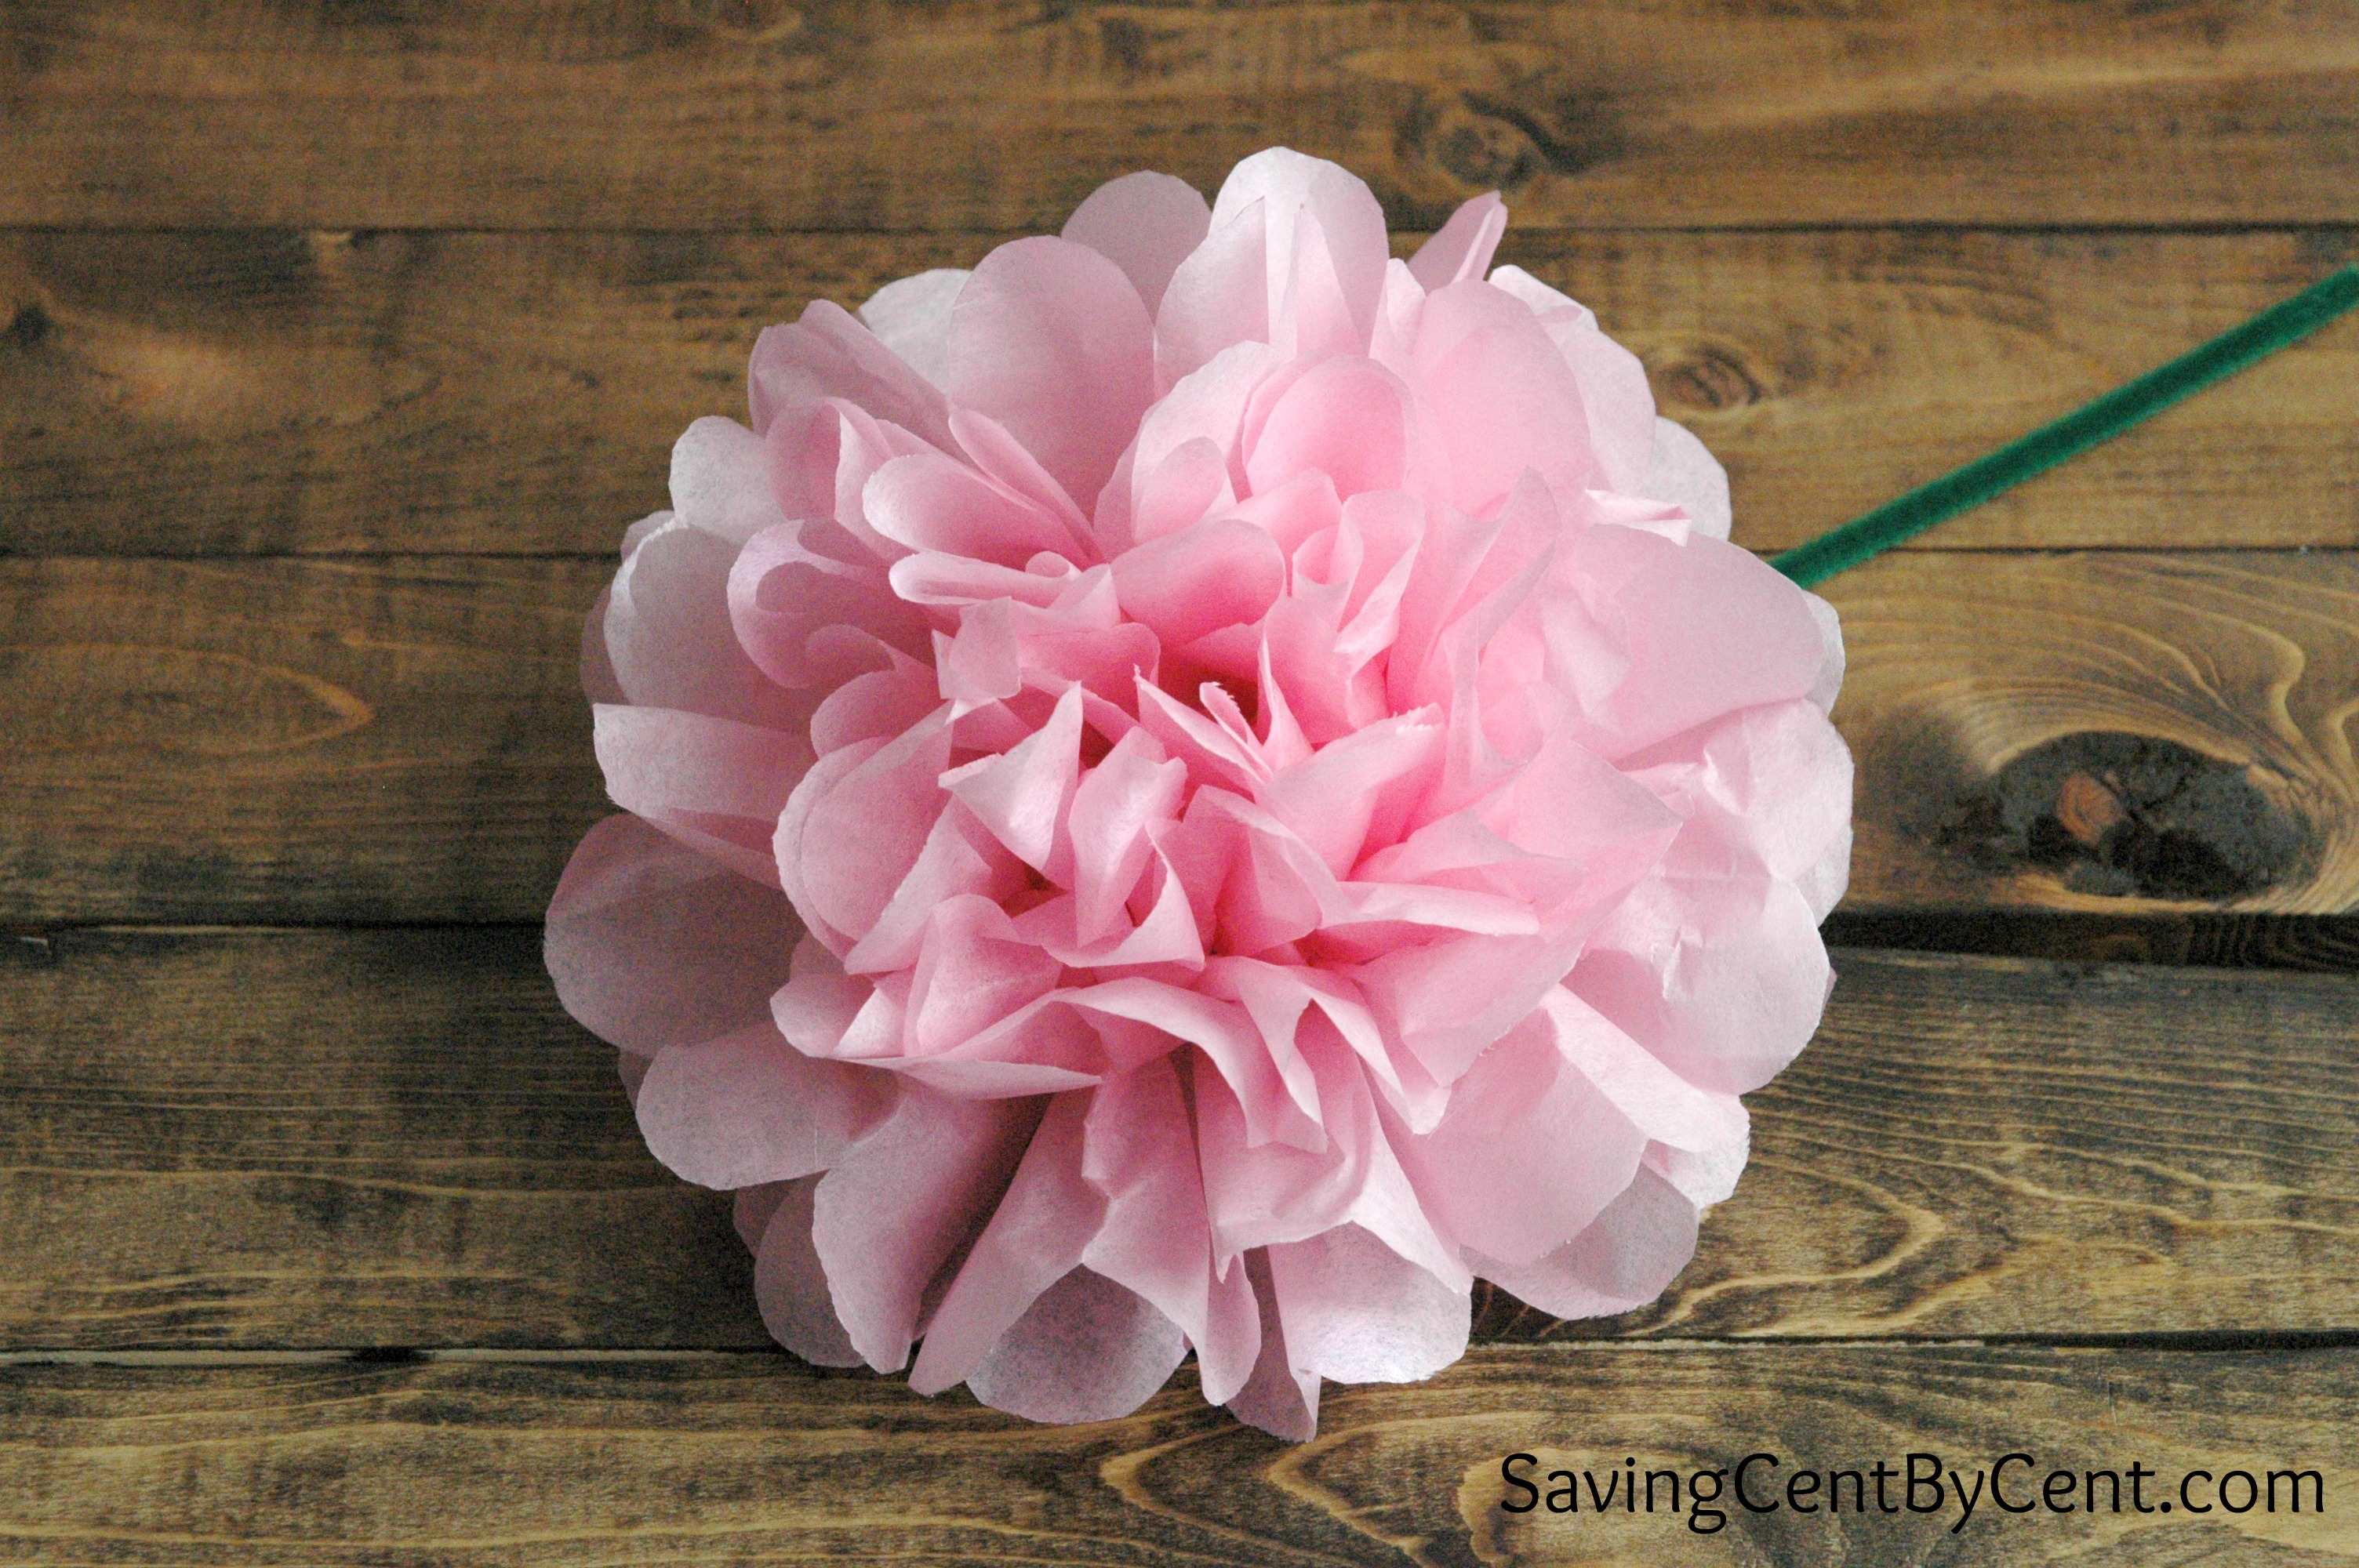 How To Make Easy Tissue Paper Flowers Page 6 Of 6 Saving Cent By